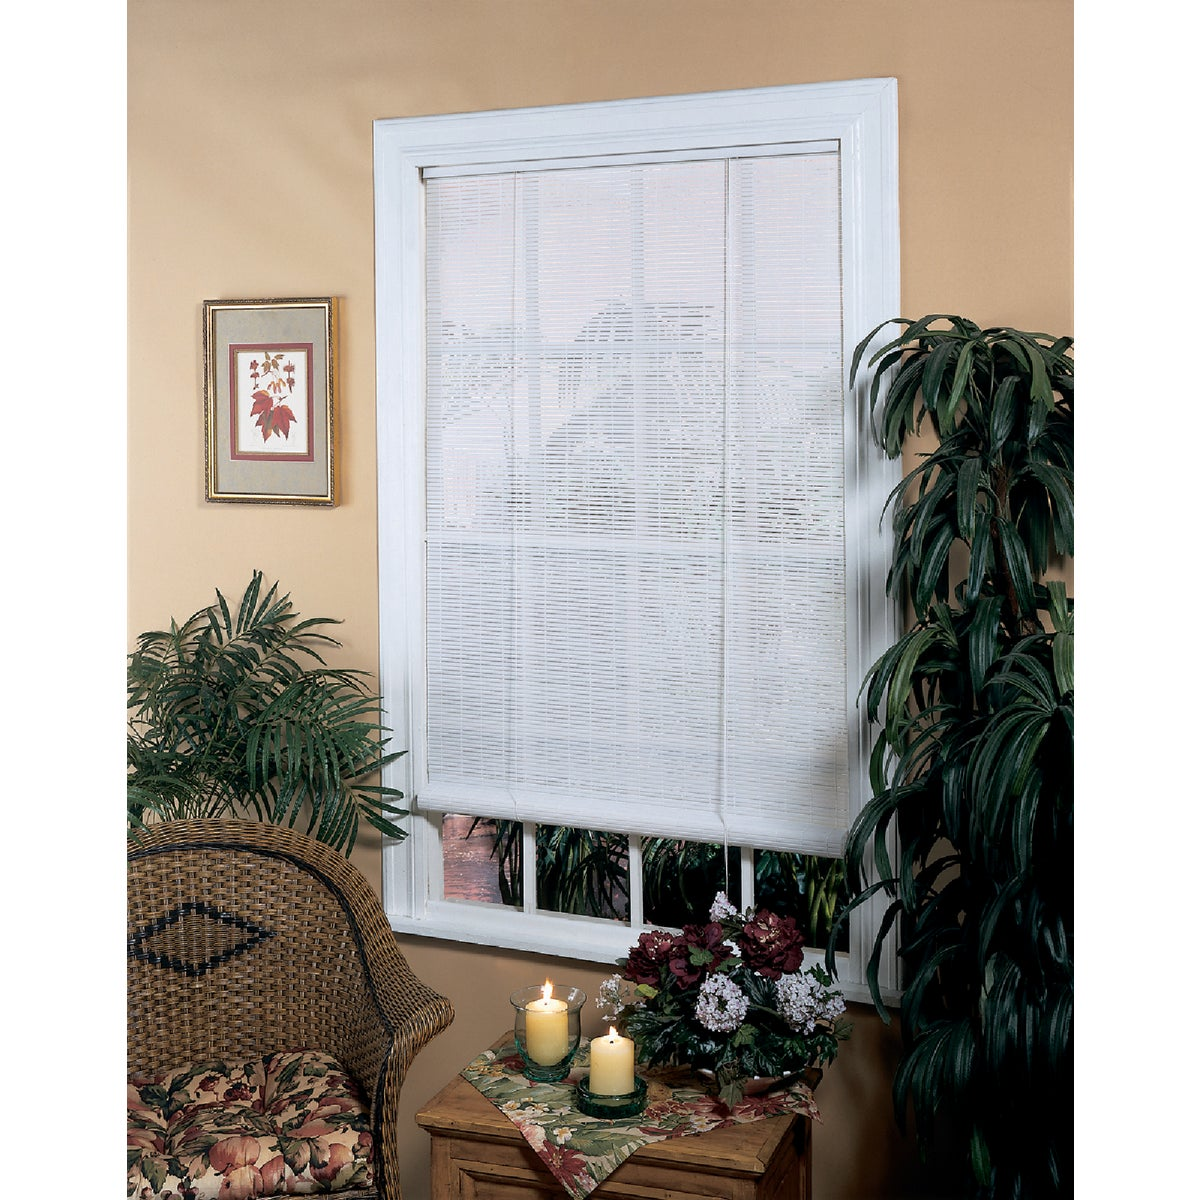 Do it Best Imports 96X72 WHT ROLL-UP BLIND 9672R101